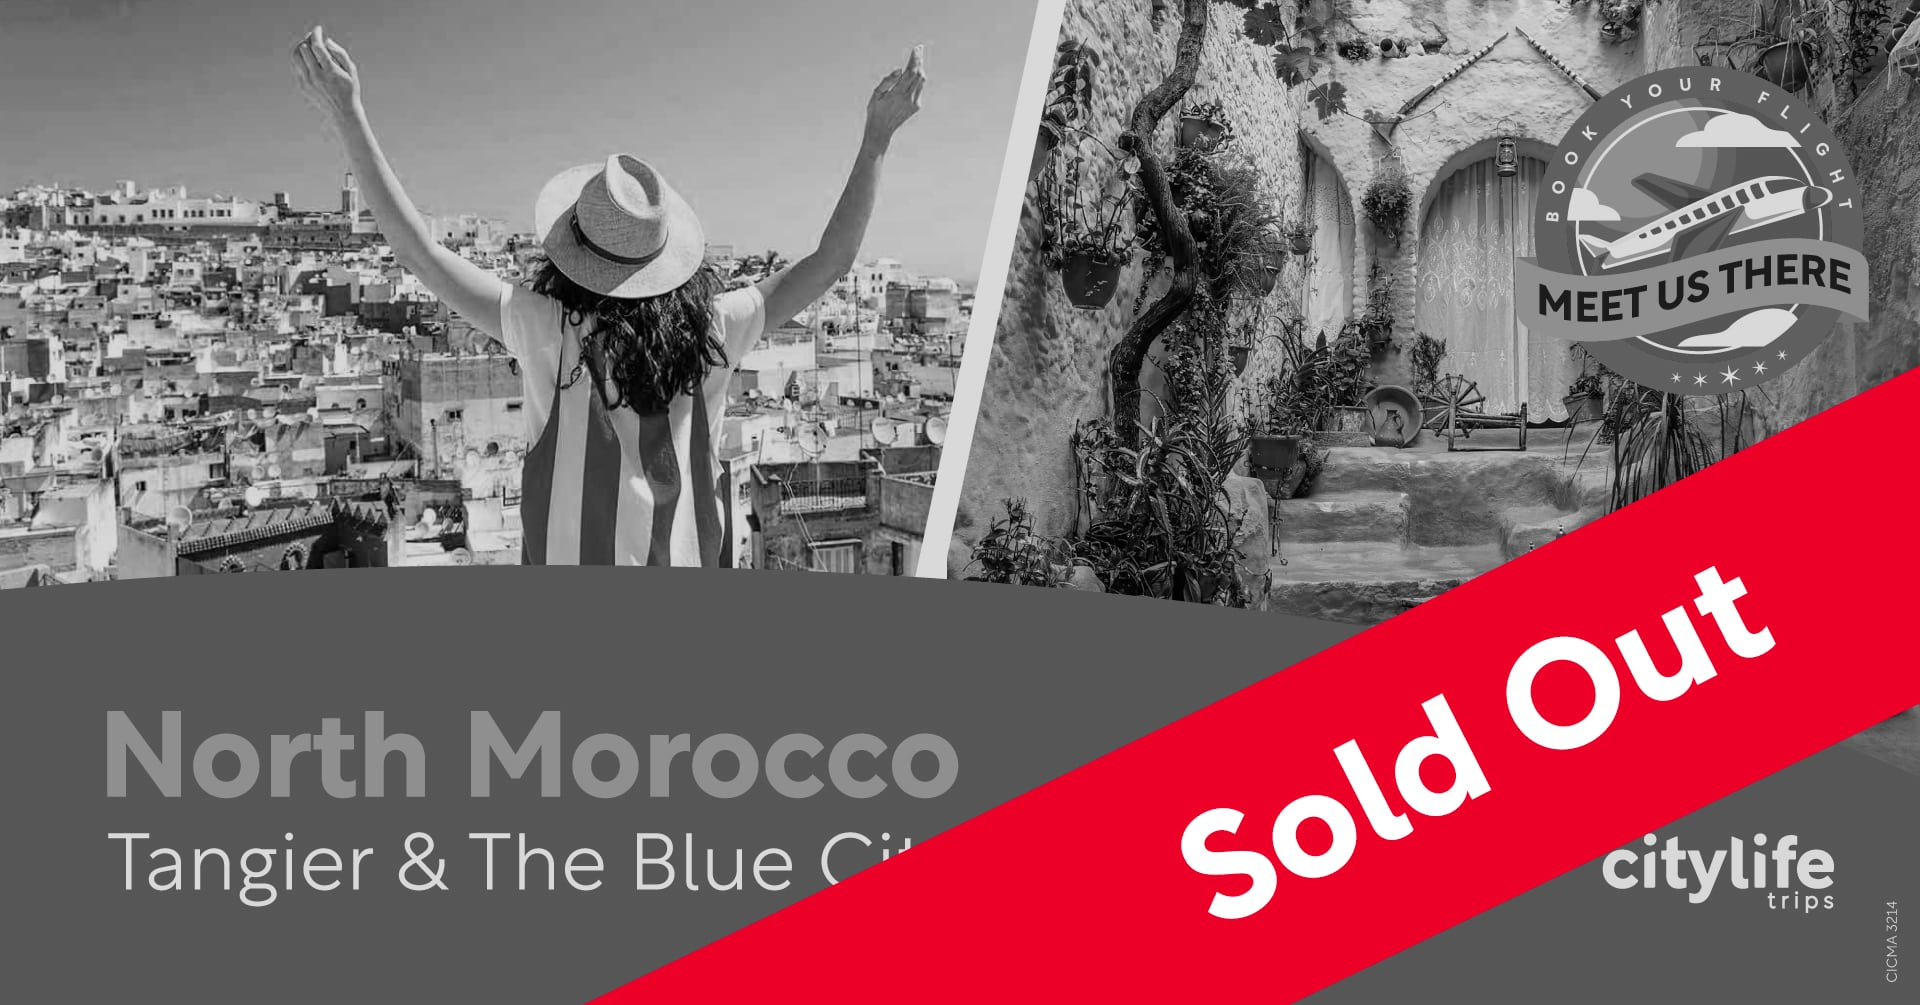 Sold-out-north-morocco-fb-event